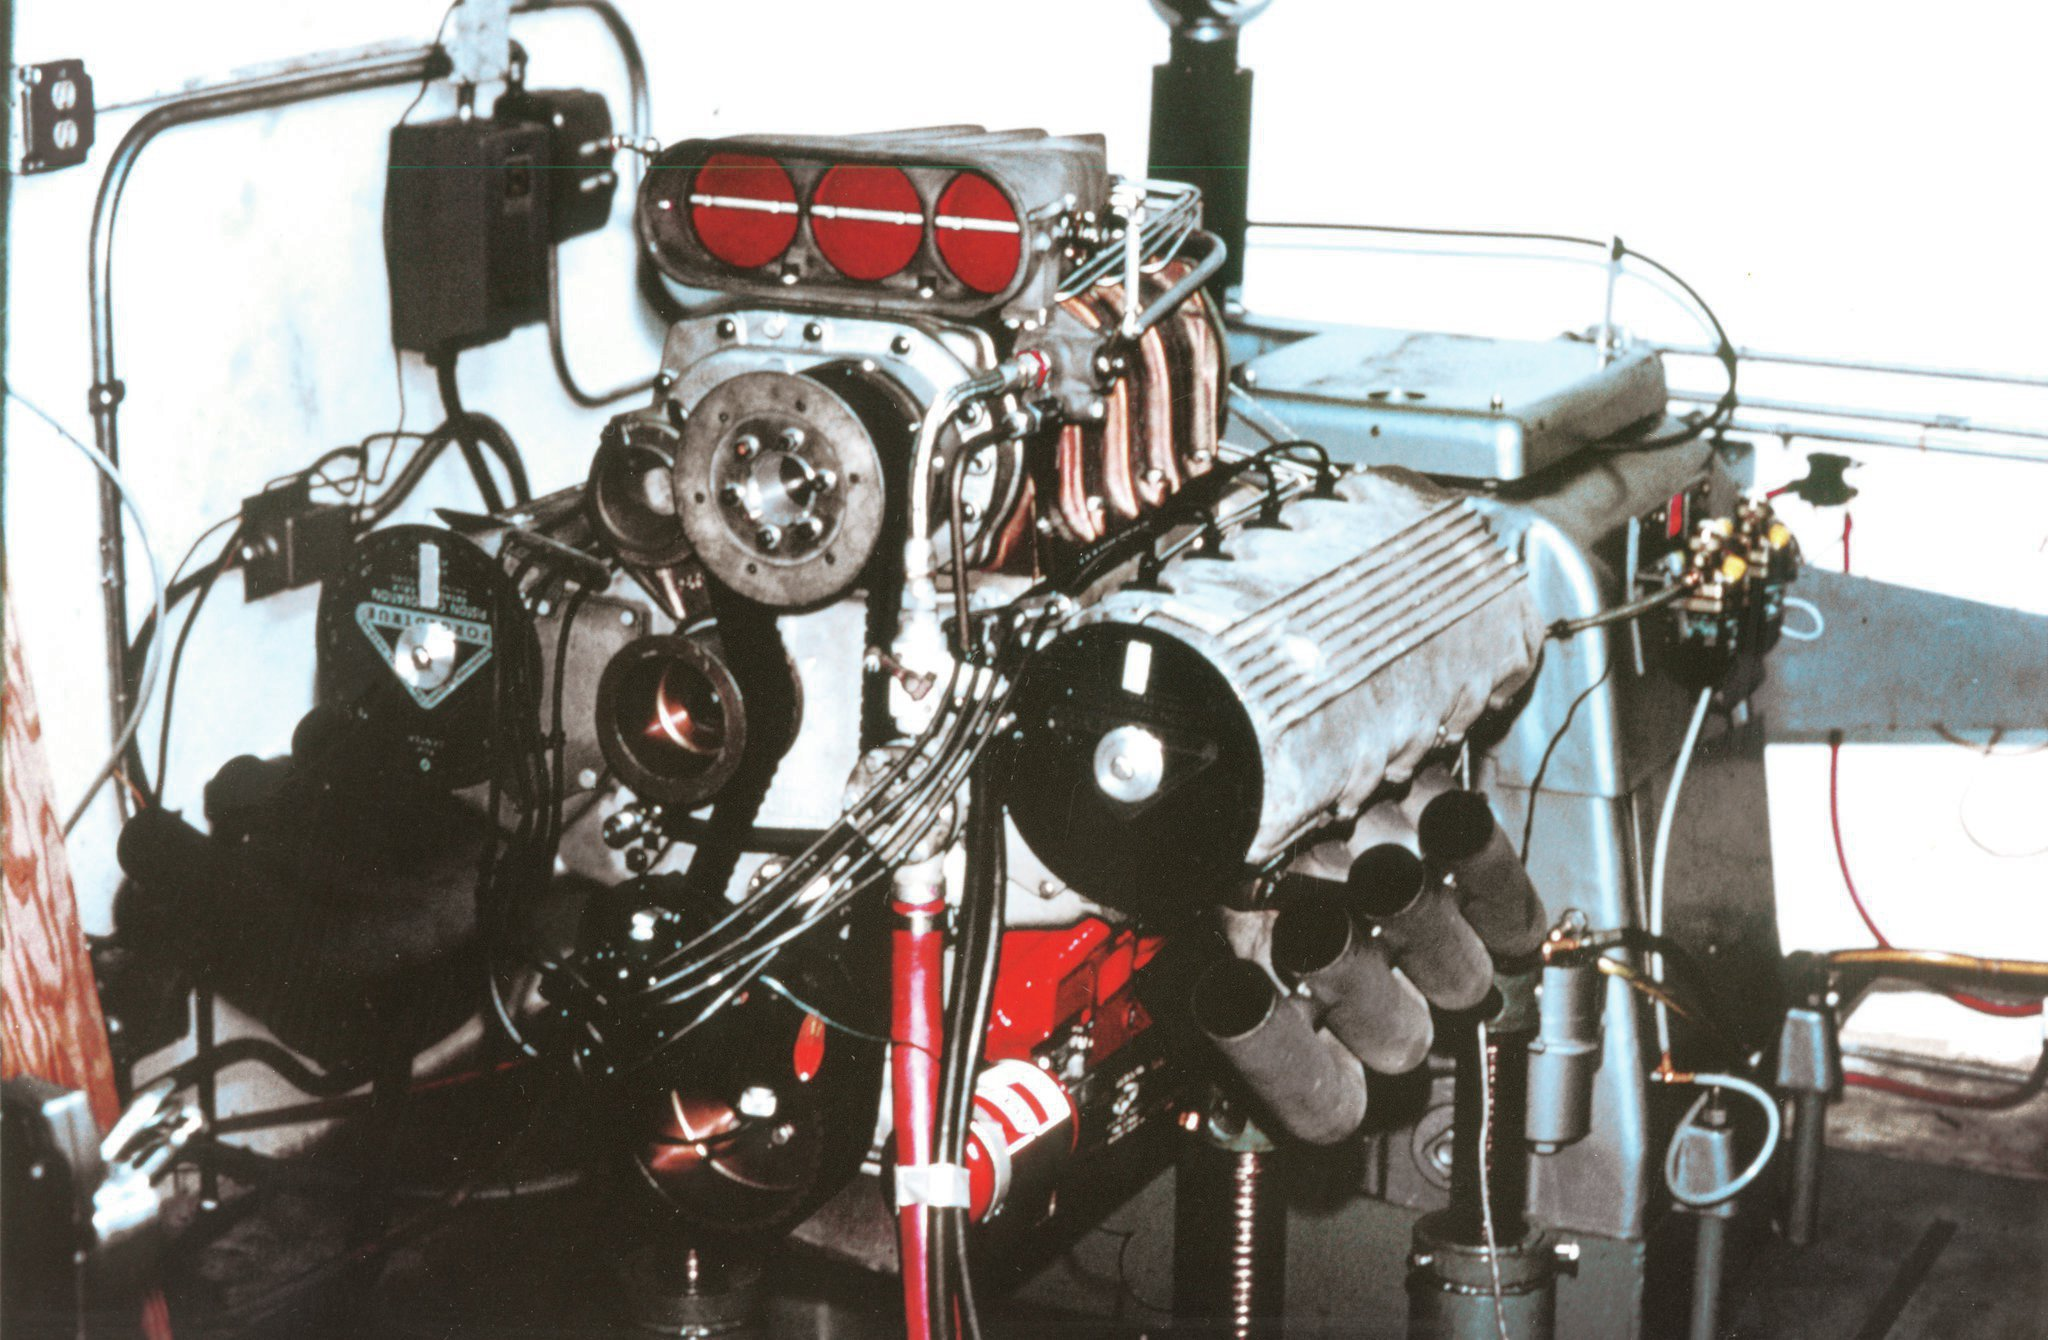 Harvey Crane made his dynamometer available so Pete could validate the theory that cam-chain stretch was retarding timing and exploding his superchargers. For proof, he rigged degree wheels, a strobe light, and an 8mm movie camera to record the phenomenon.